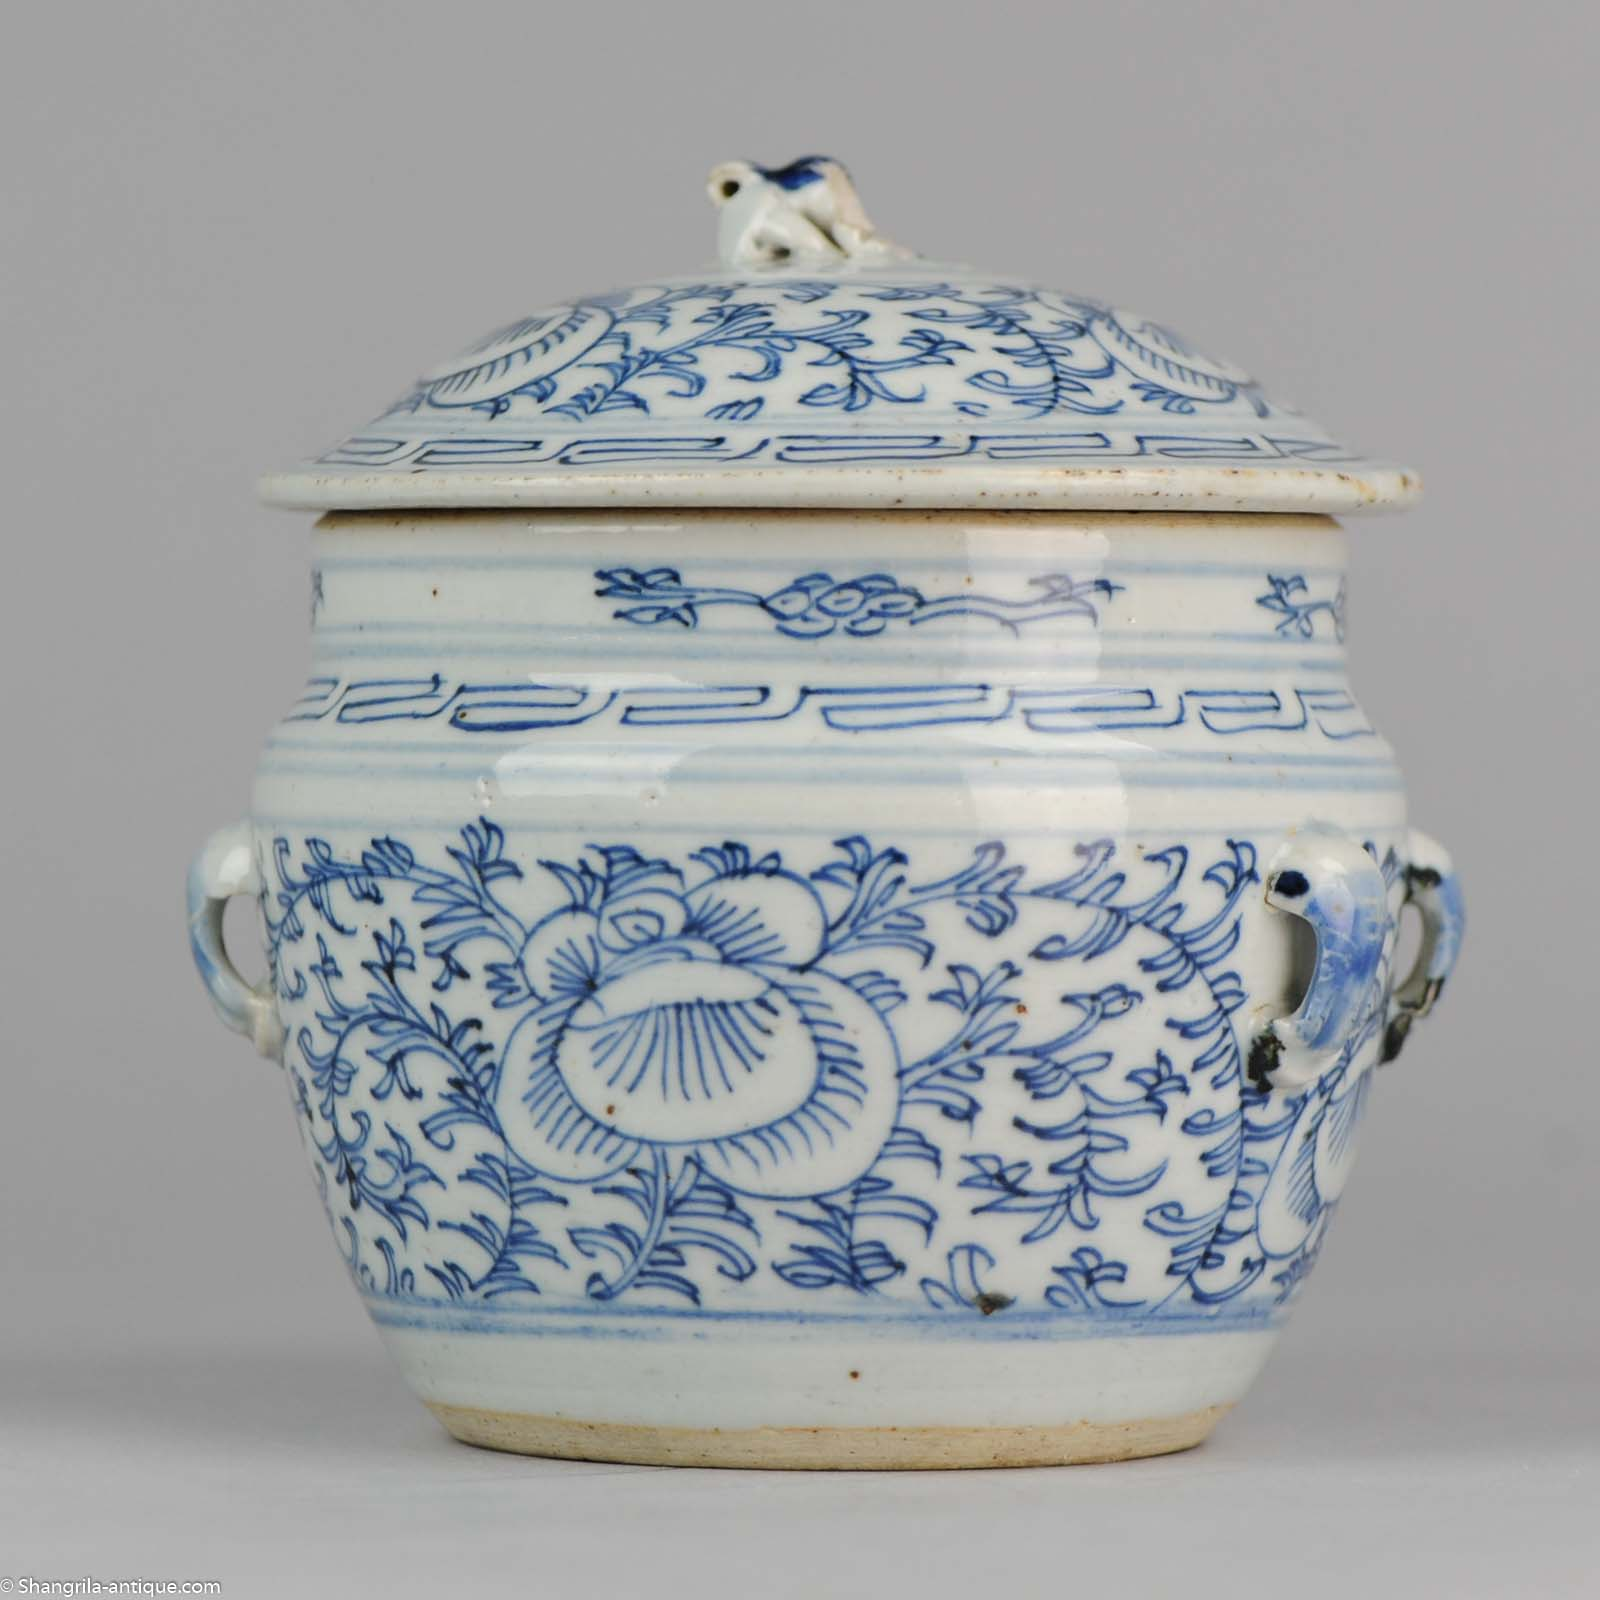 Number 1 Chinese Kitchen: 19C Chinese Porcelain Kitchen Ch'ing Qing Lidded Jar